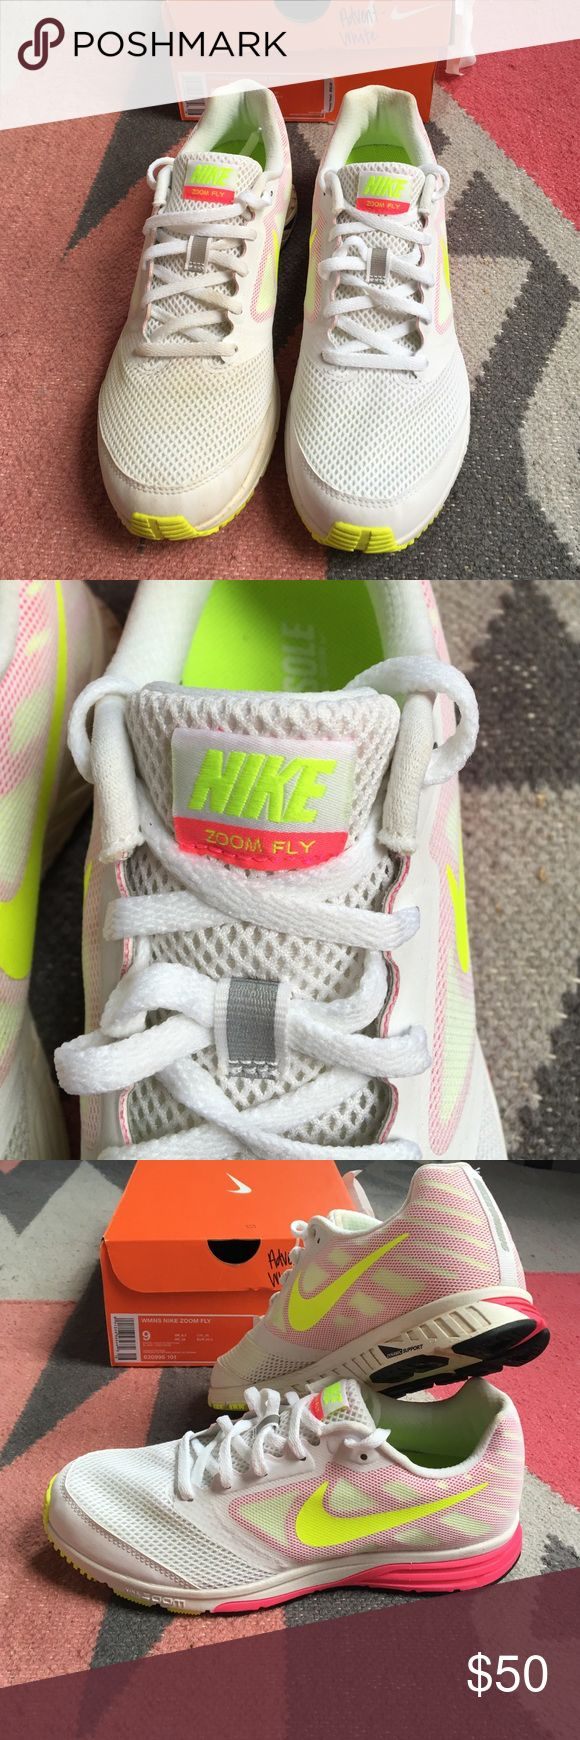 Nike Zoom Fly Shoes White Nike Zoom Fly with neon pink and yellow accents. Worn once. Nike Shoes Athletic Shoes